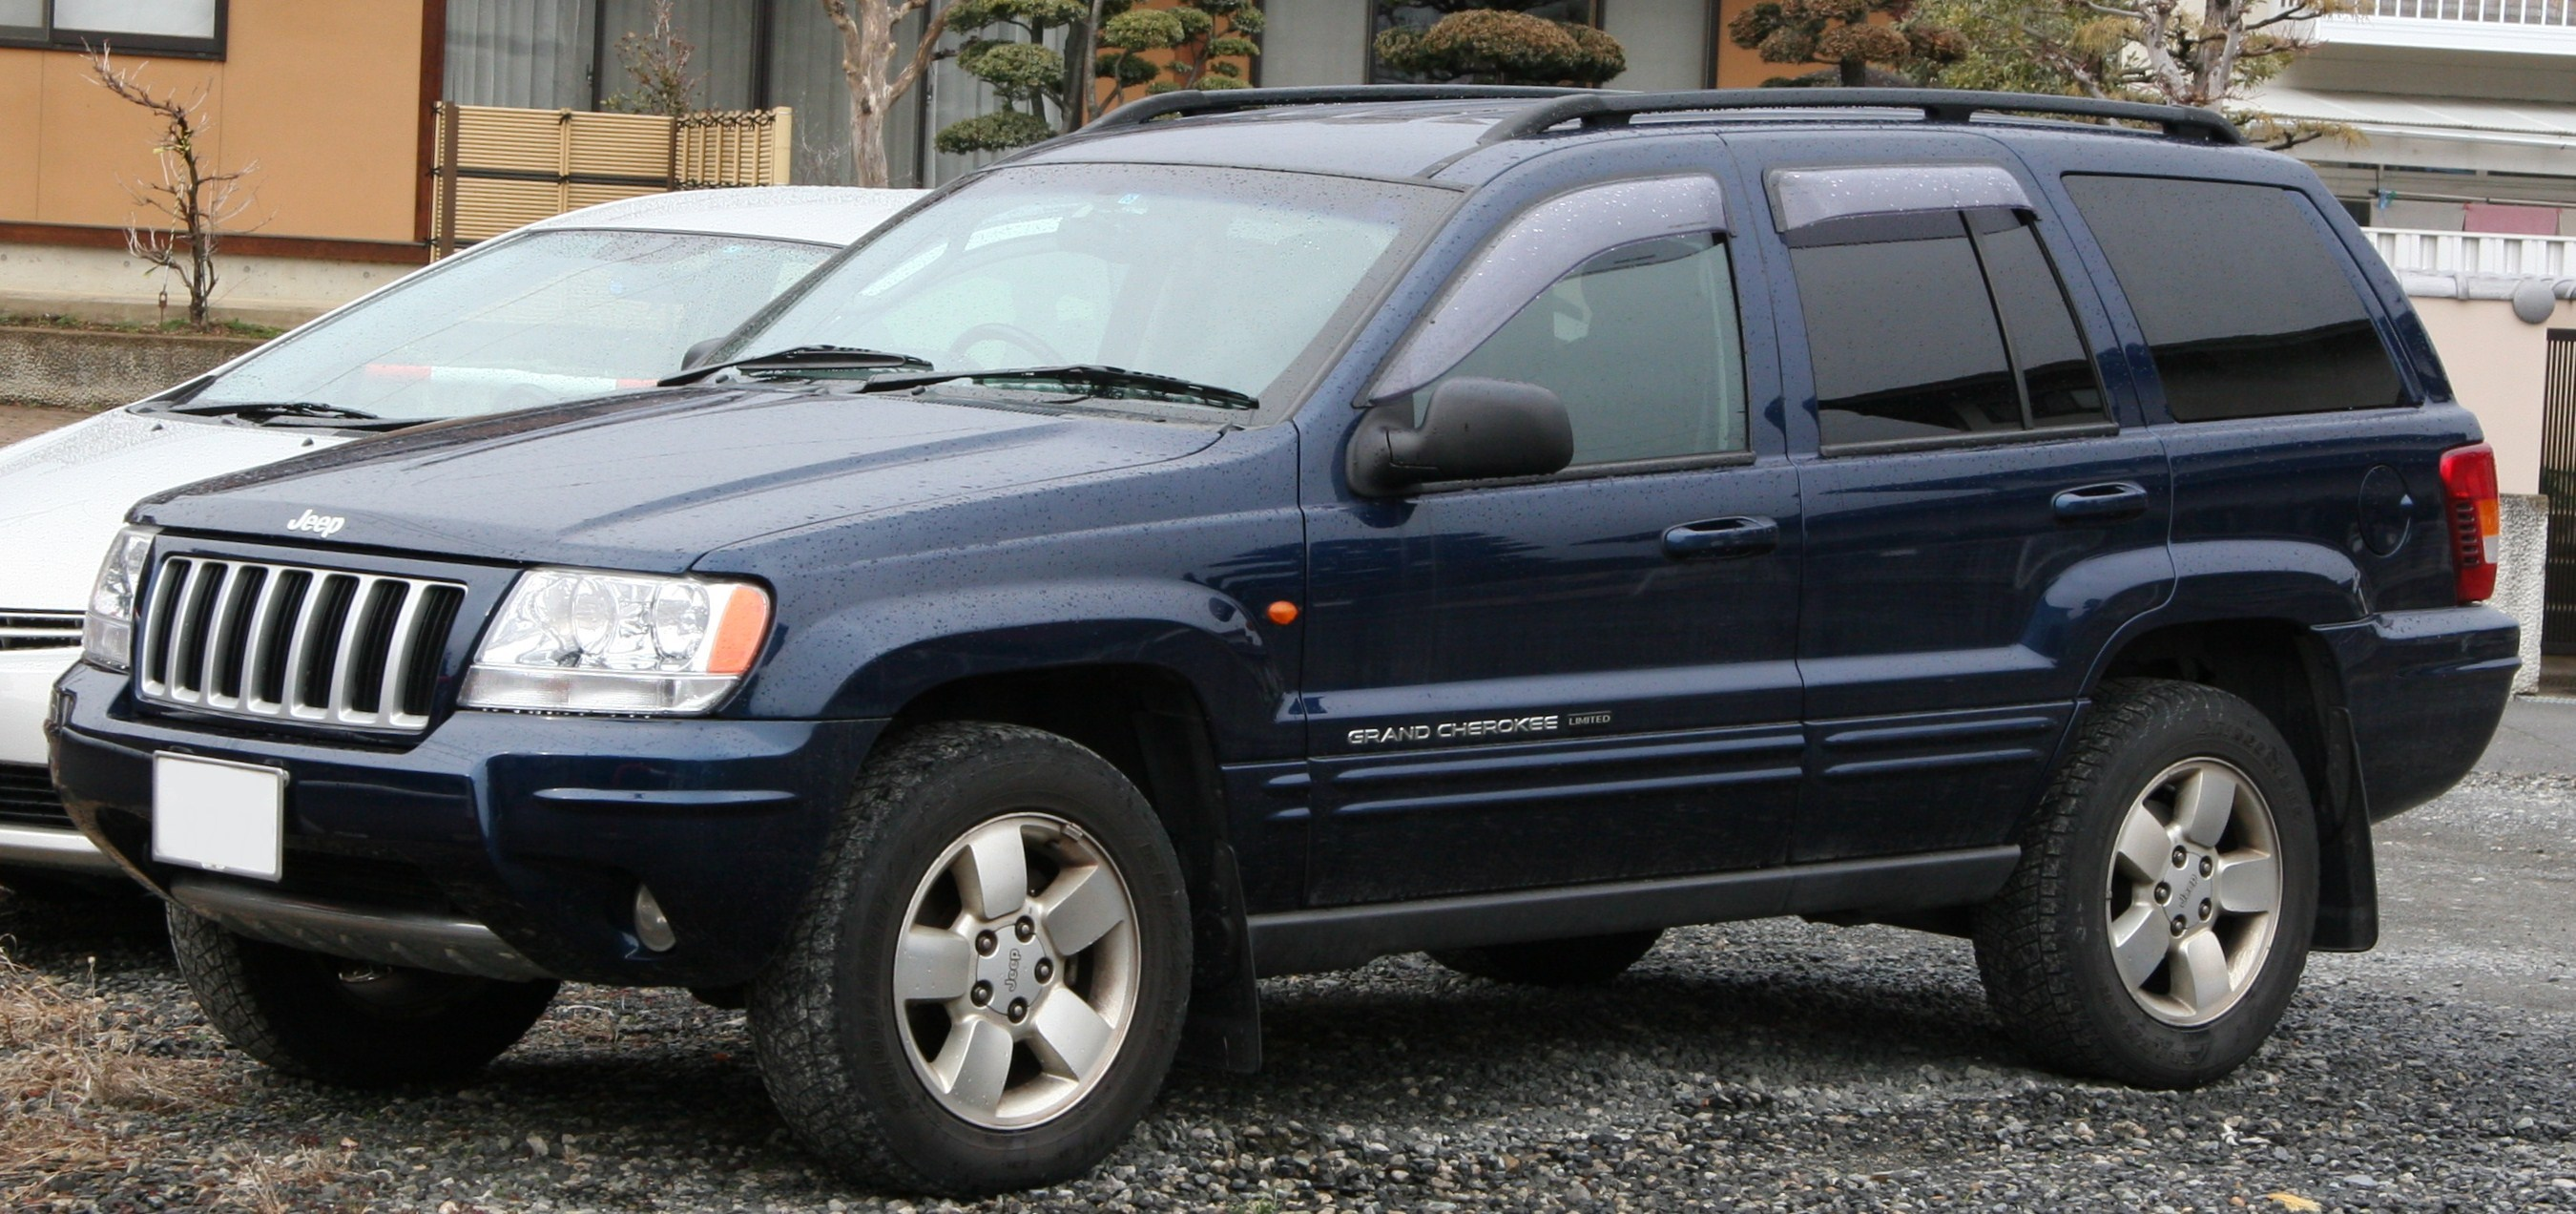 2003 jeep grand cherokee laredo. Cars Review. Best American Auto & Cars Review